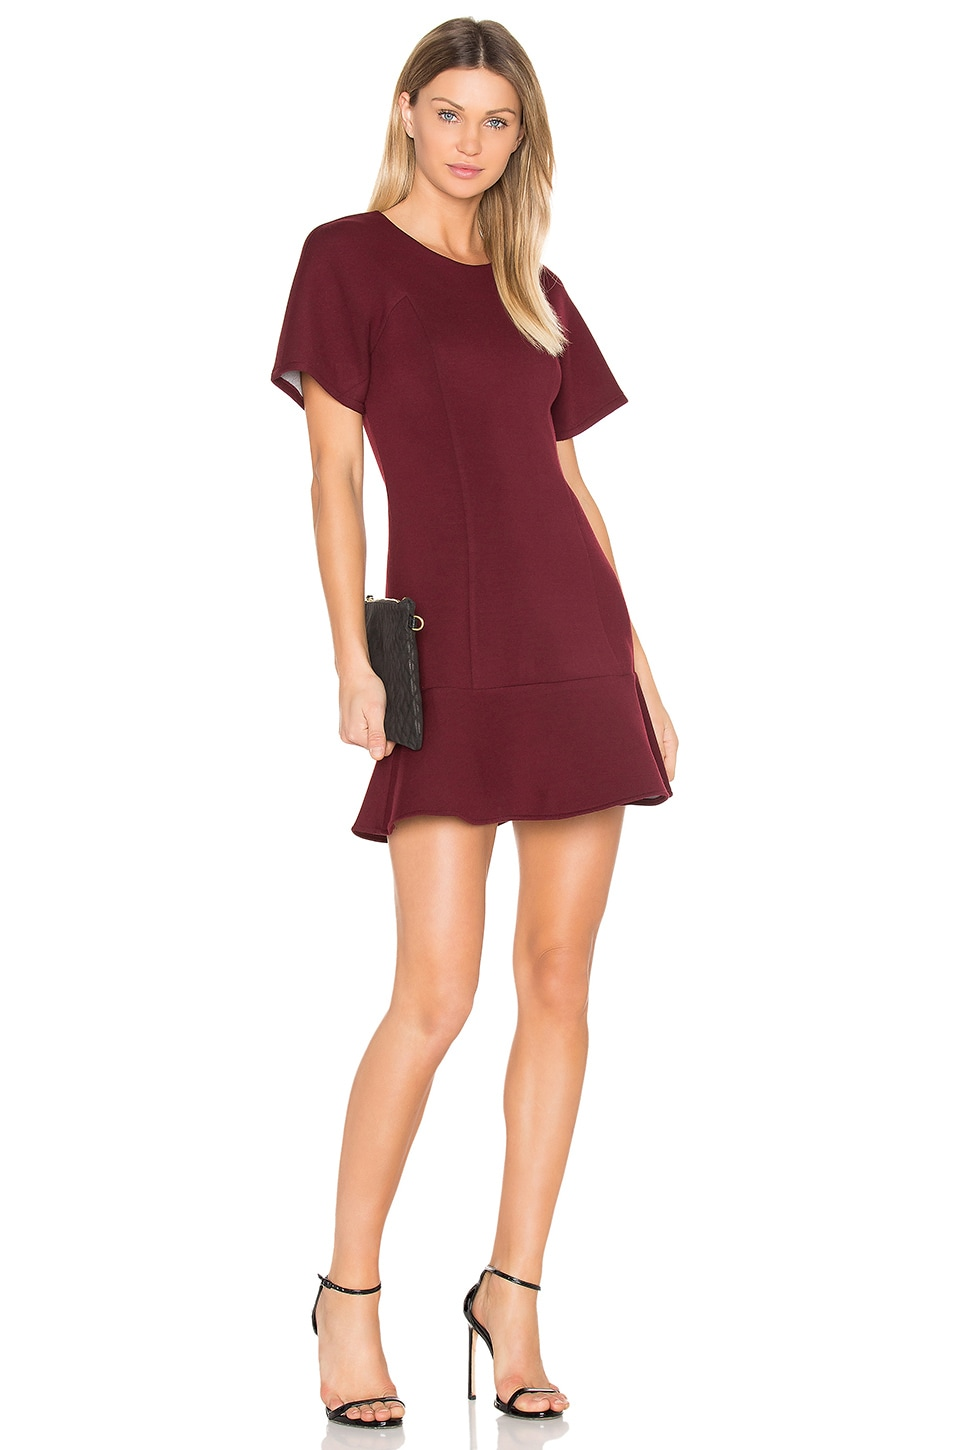 Tee Flare Dress by Blq Basiq